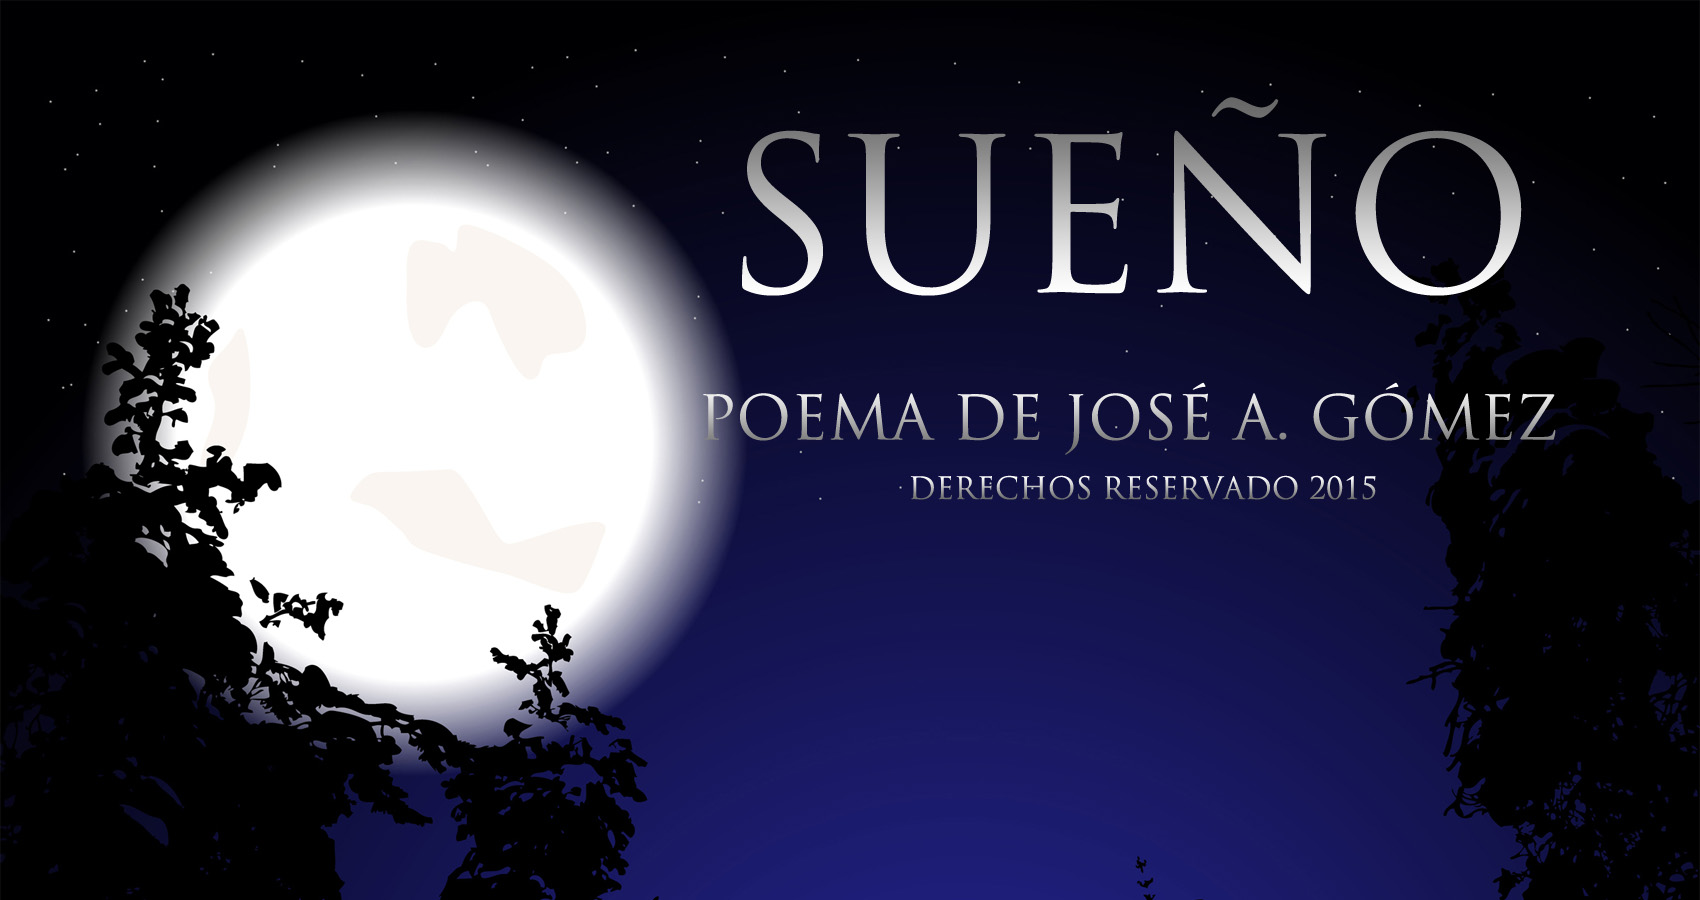 Sueño a poem at spillwords.com by José A. Gómez